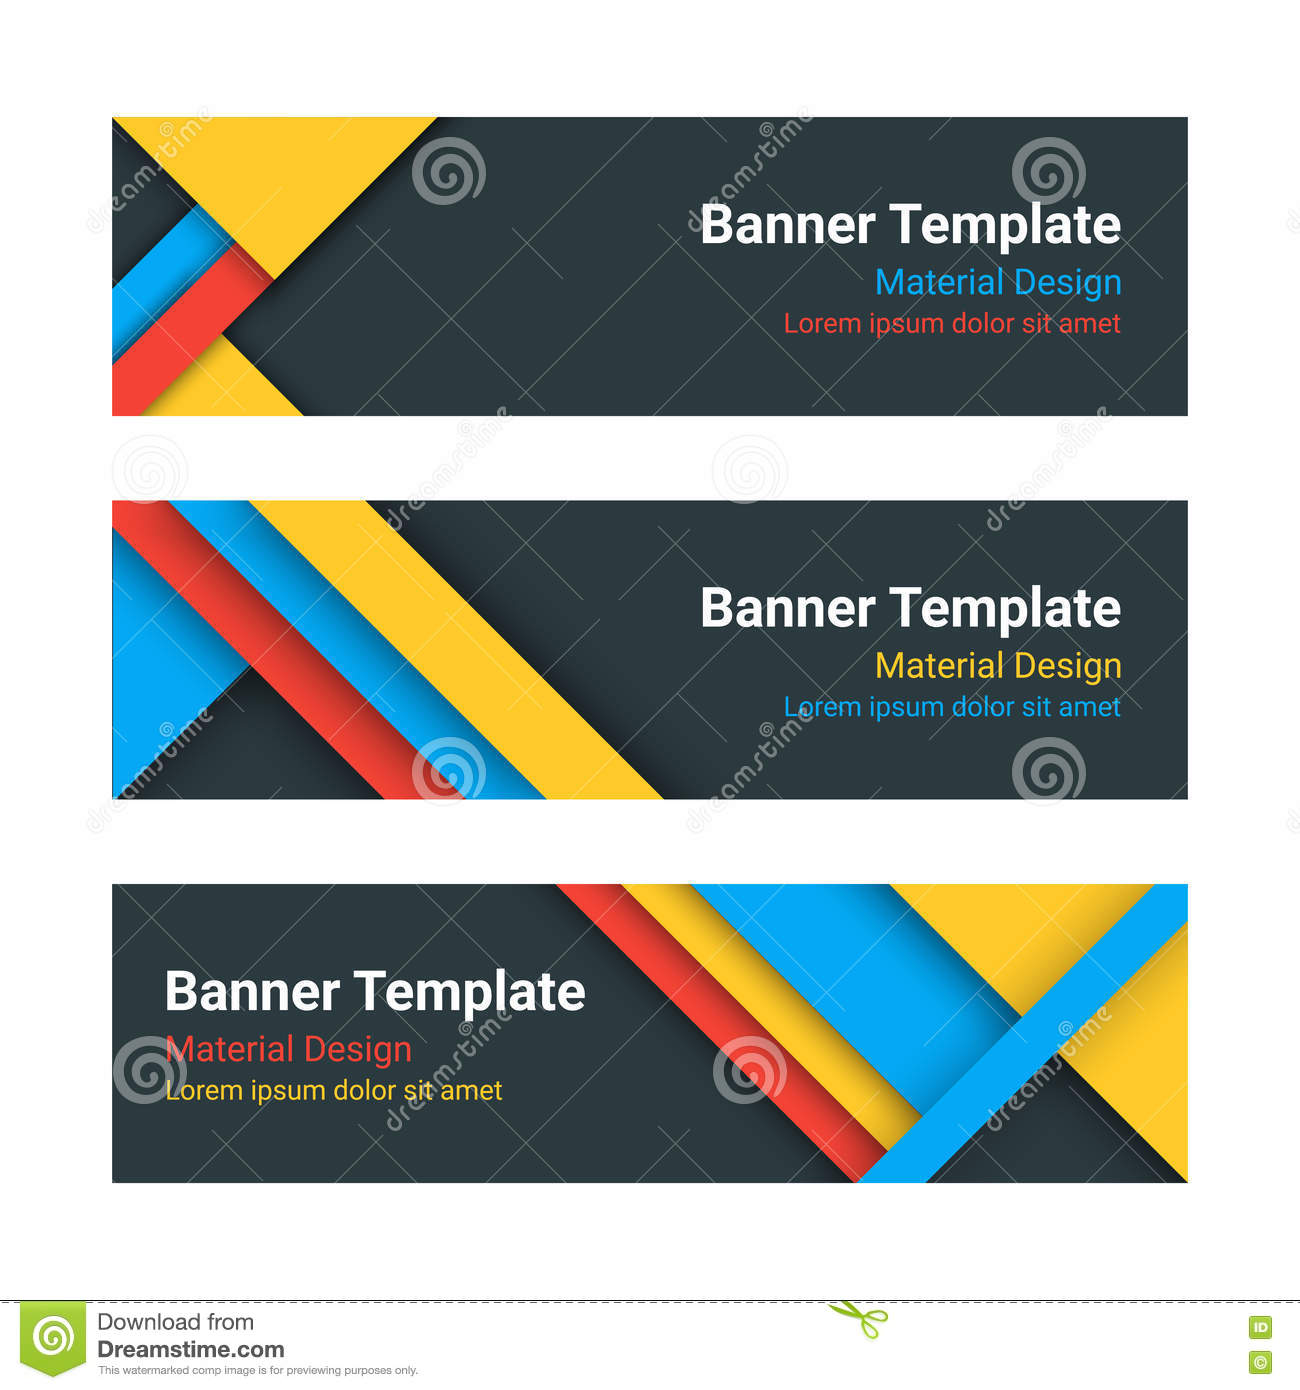 Design vector banner - Royalty Free Vector Download Material Design Web Banners